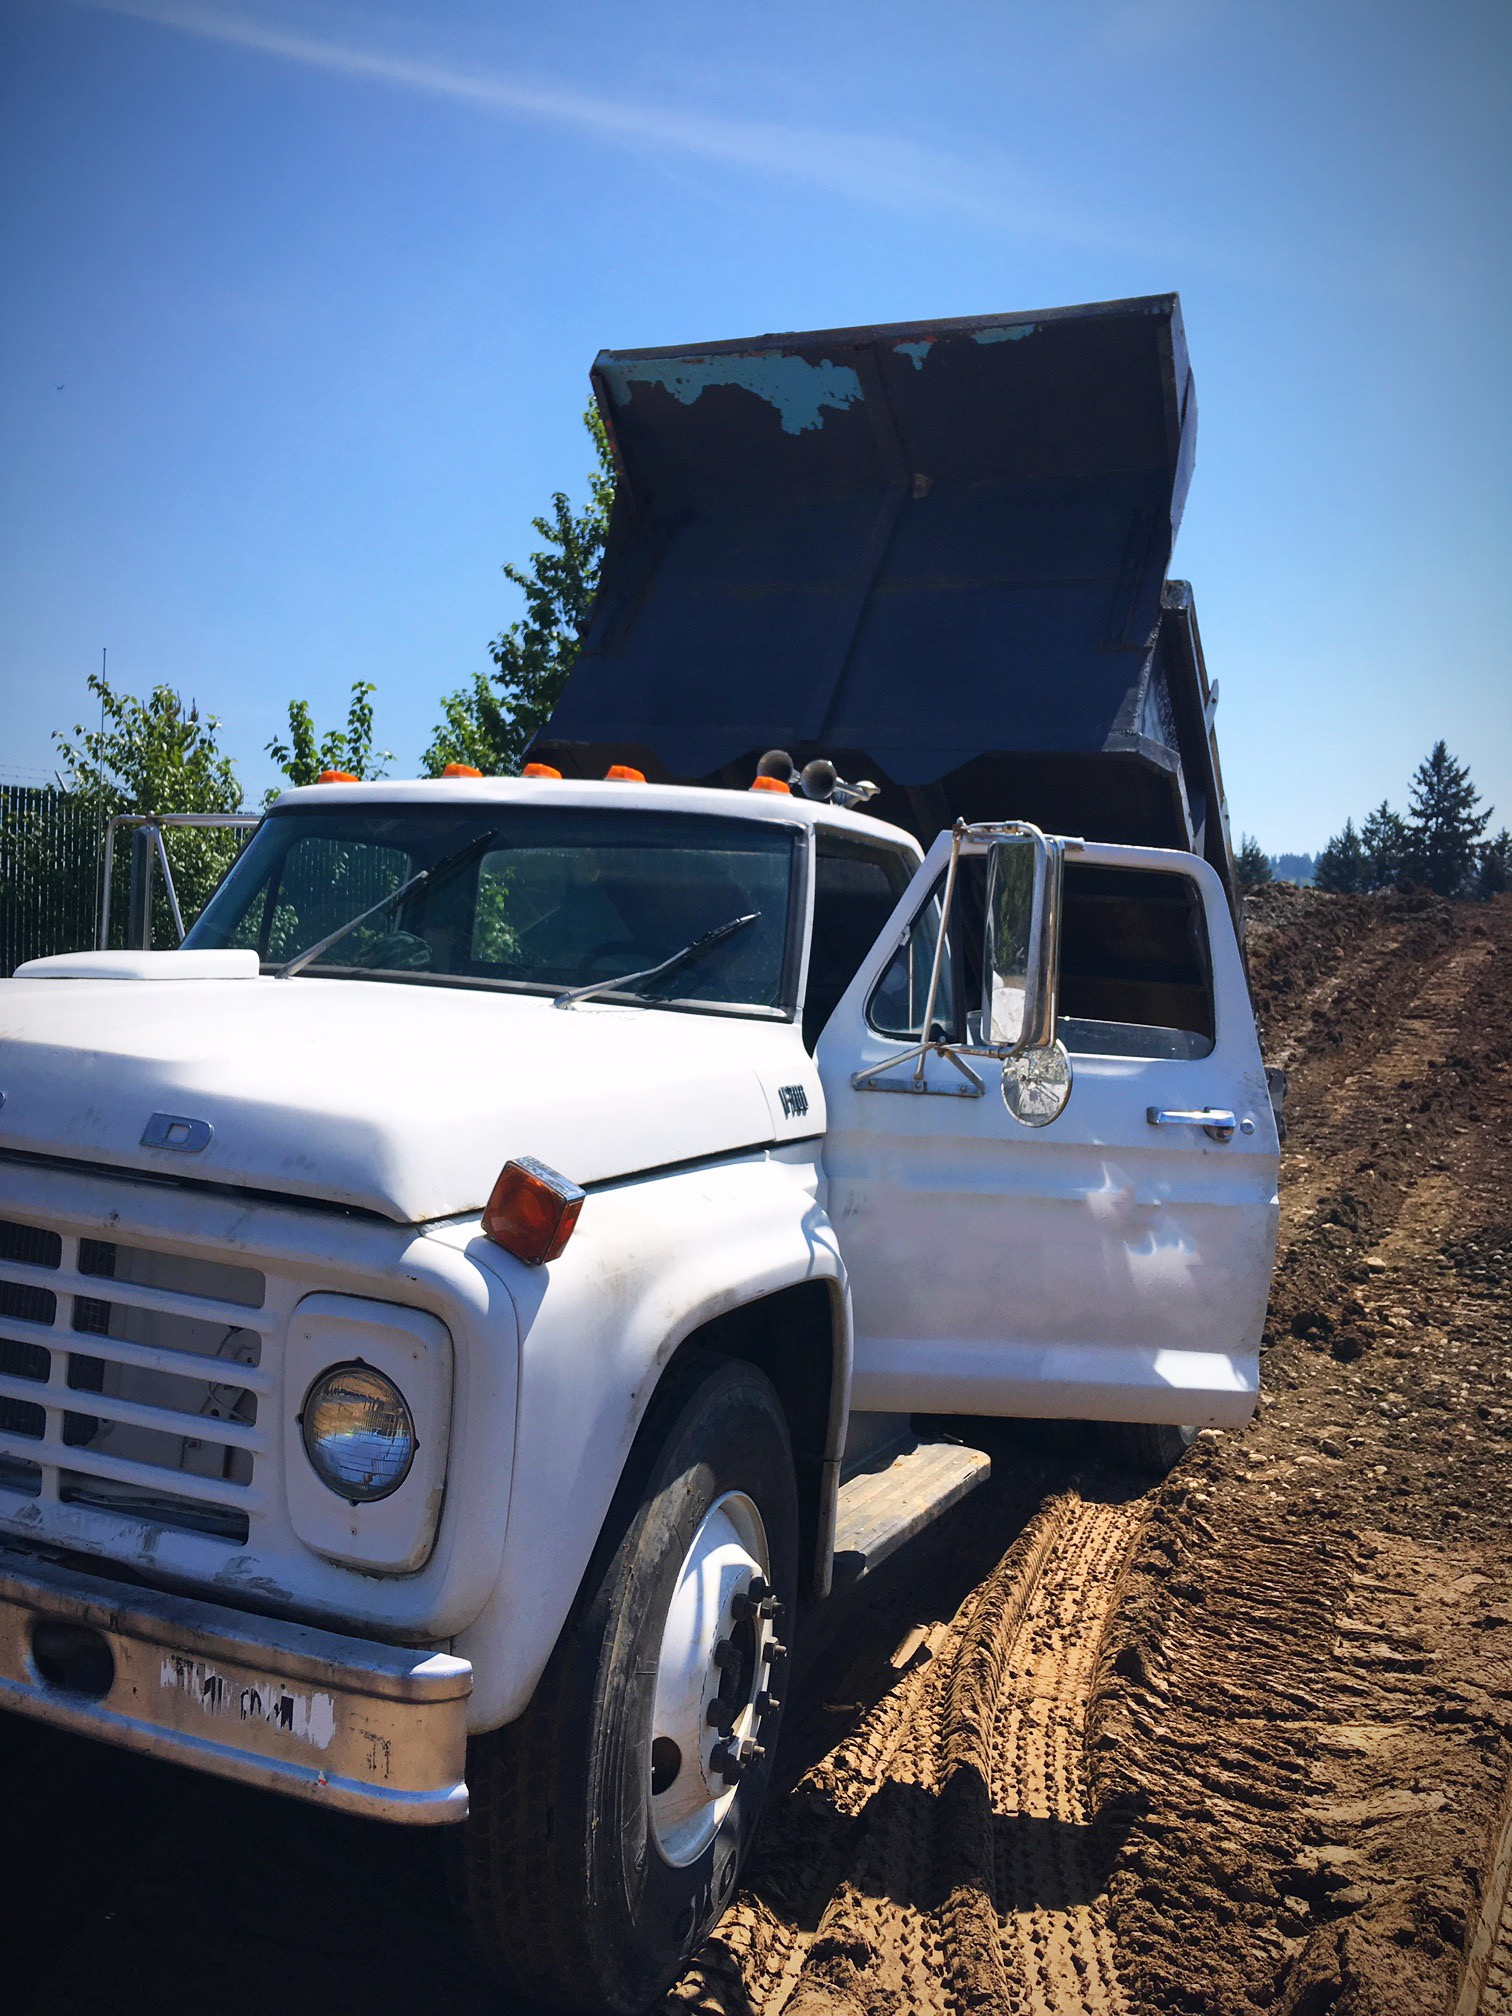 1977 Ford F-700 On the Move